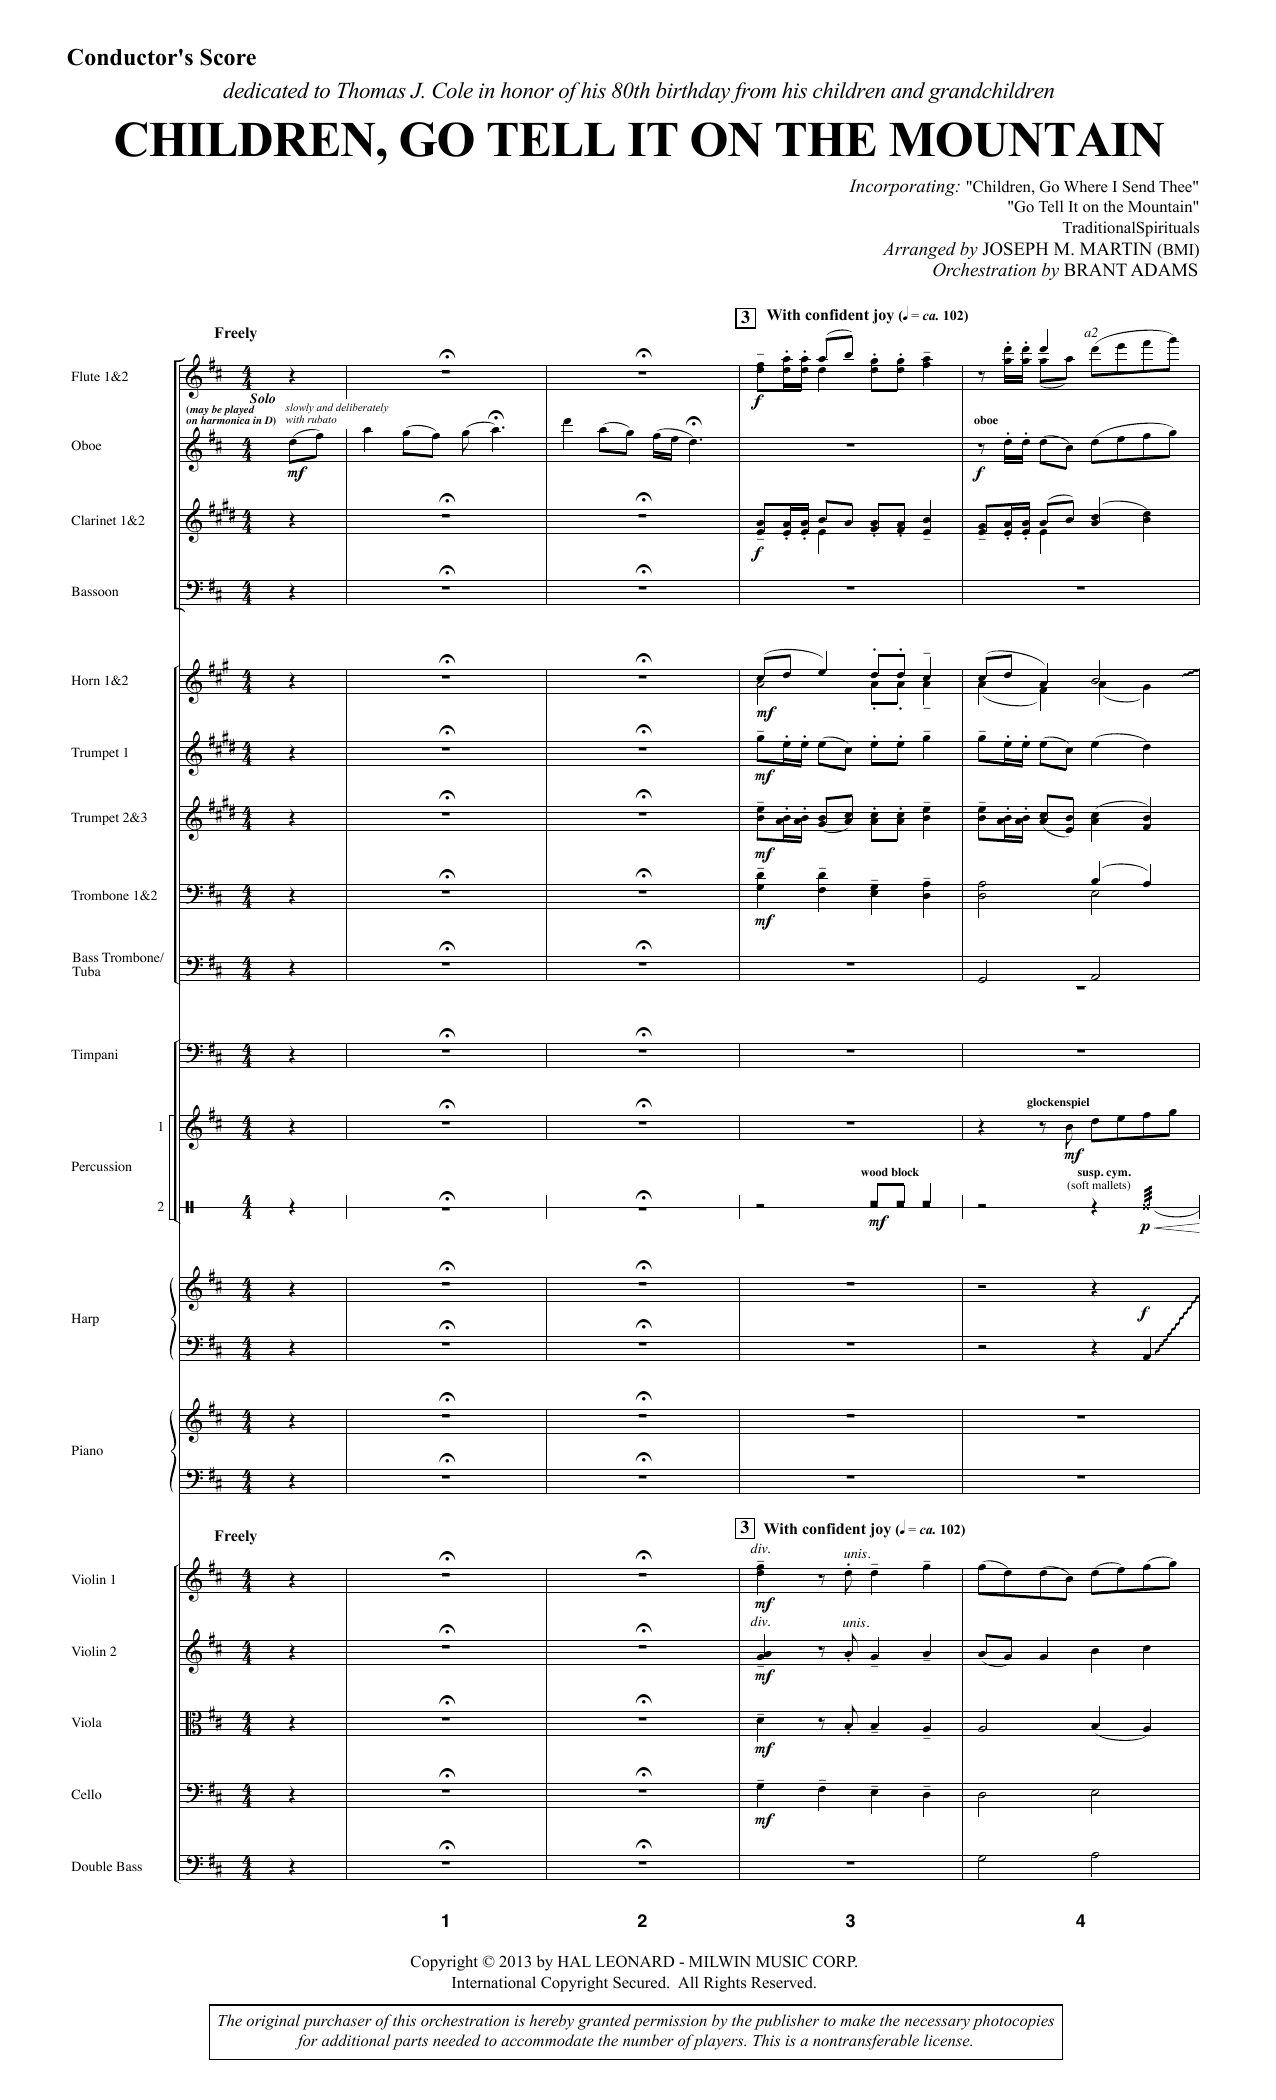 Joseph M. Martin Children, Go Tell It on the Mountain - Full Score sheet music notes and chords. Download Printable PDF.